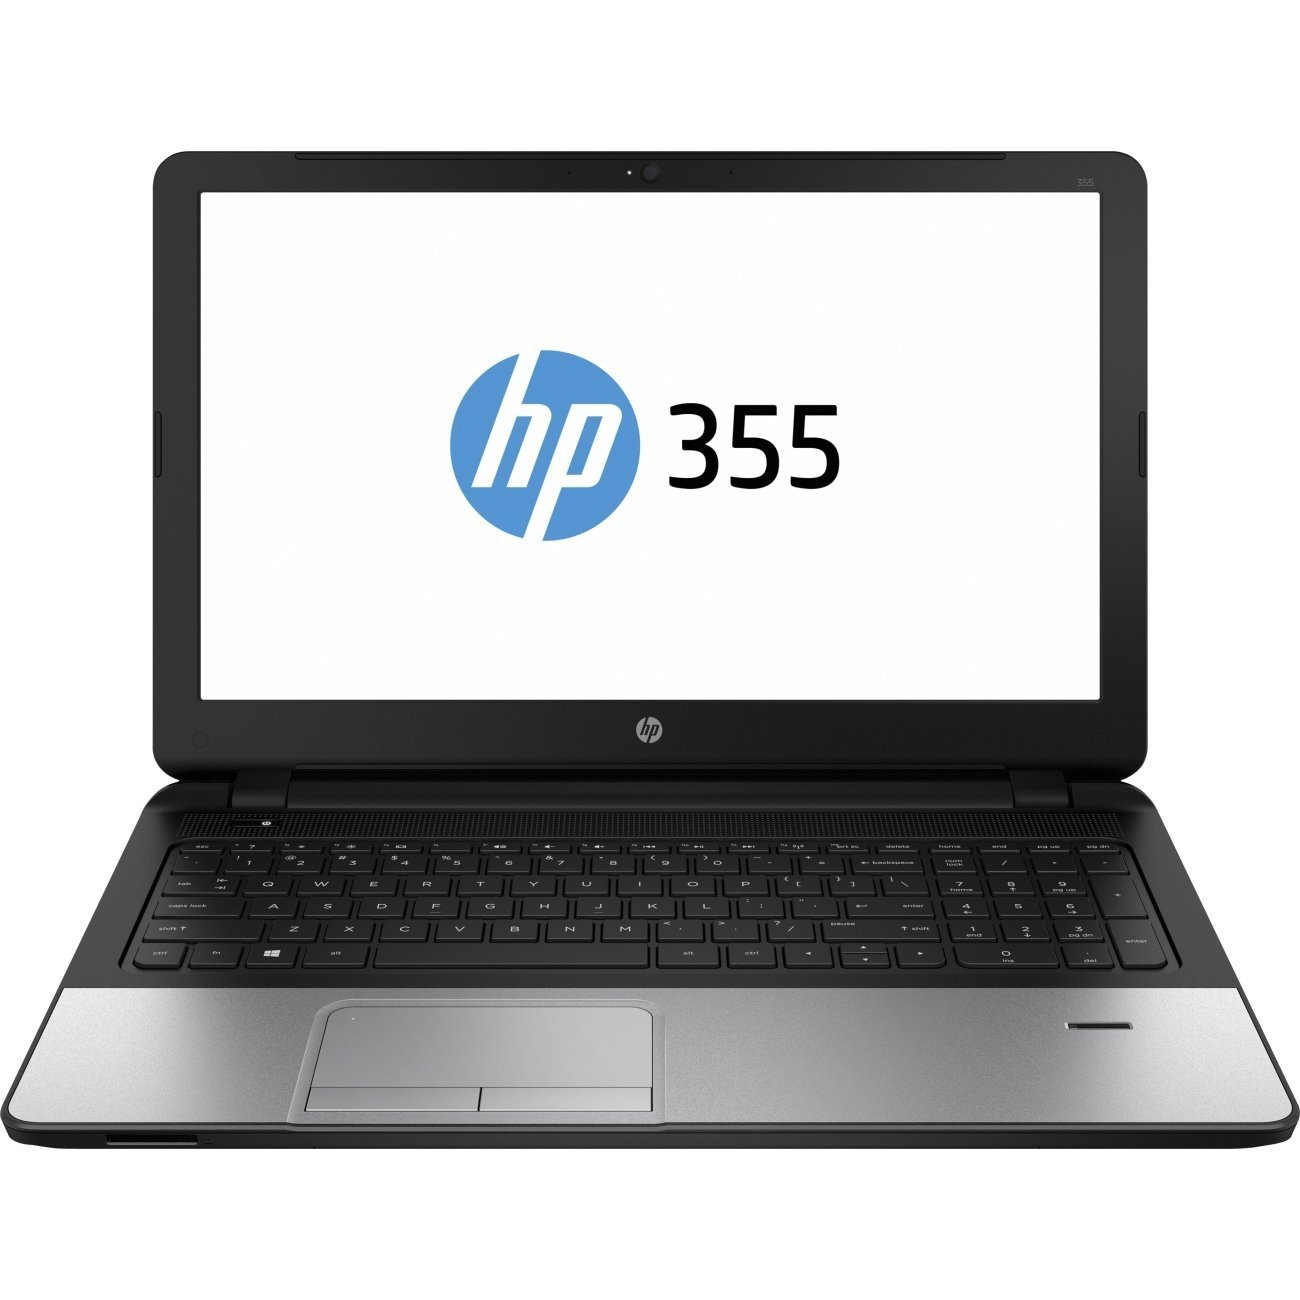 HP Laptop G2 AMD A8-6410 2.00GHz 500GB HDD 4GB RAM Radeon R5 15.6'' Windows 7 Professional 64 bits DVD Super Multi Bluetooth webcam WIFI